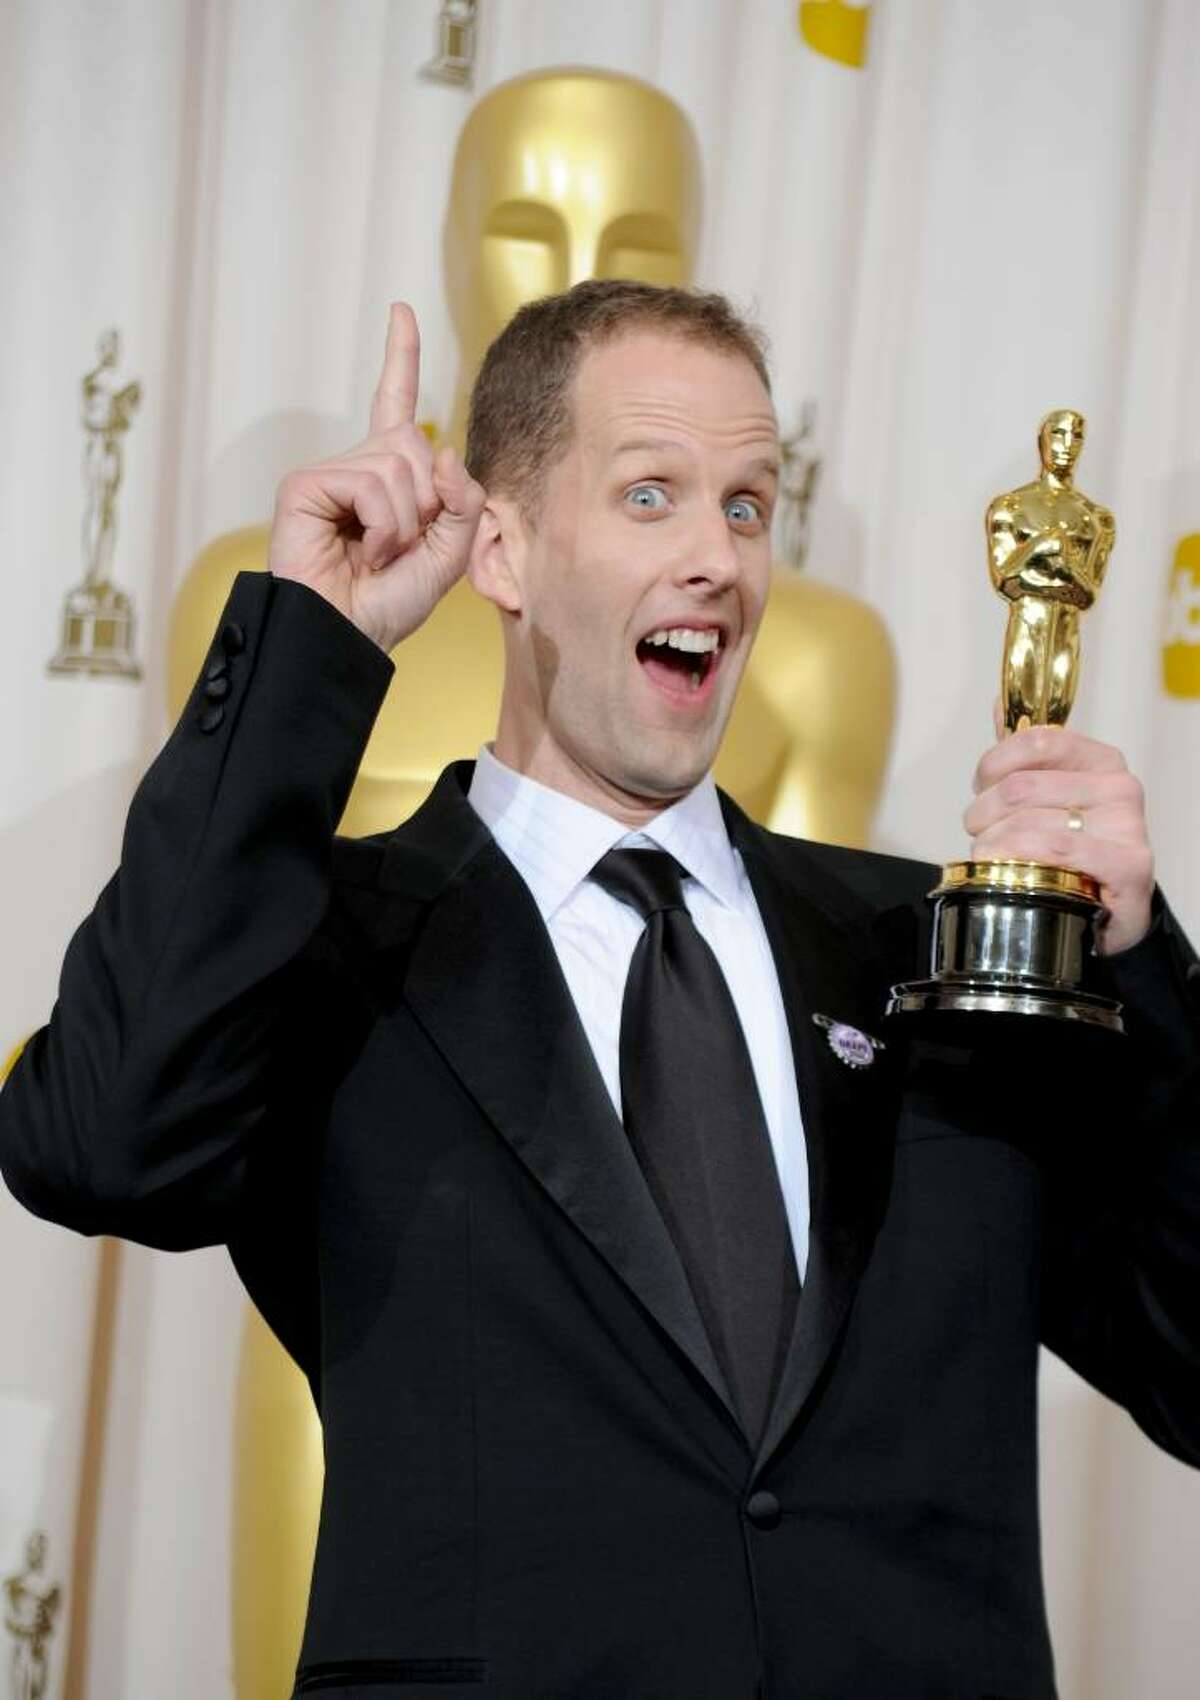 HOLLYWOOD - MARCH 07: (EDITORS NOTE: NO ONLINE, NO INTERNET, EMBARGOED FROM INTERNET AND TELEVISION USAGE UNTIL THE CONCLUSION OF THE LIVE OSCARS TELECAST) Director Pete Docter, winner of Best Animated Feature award for